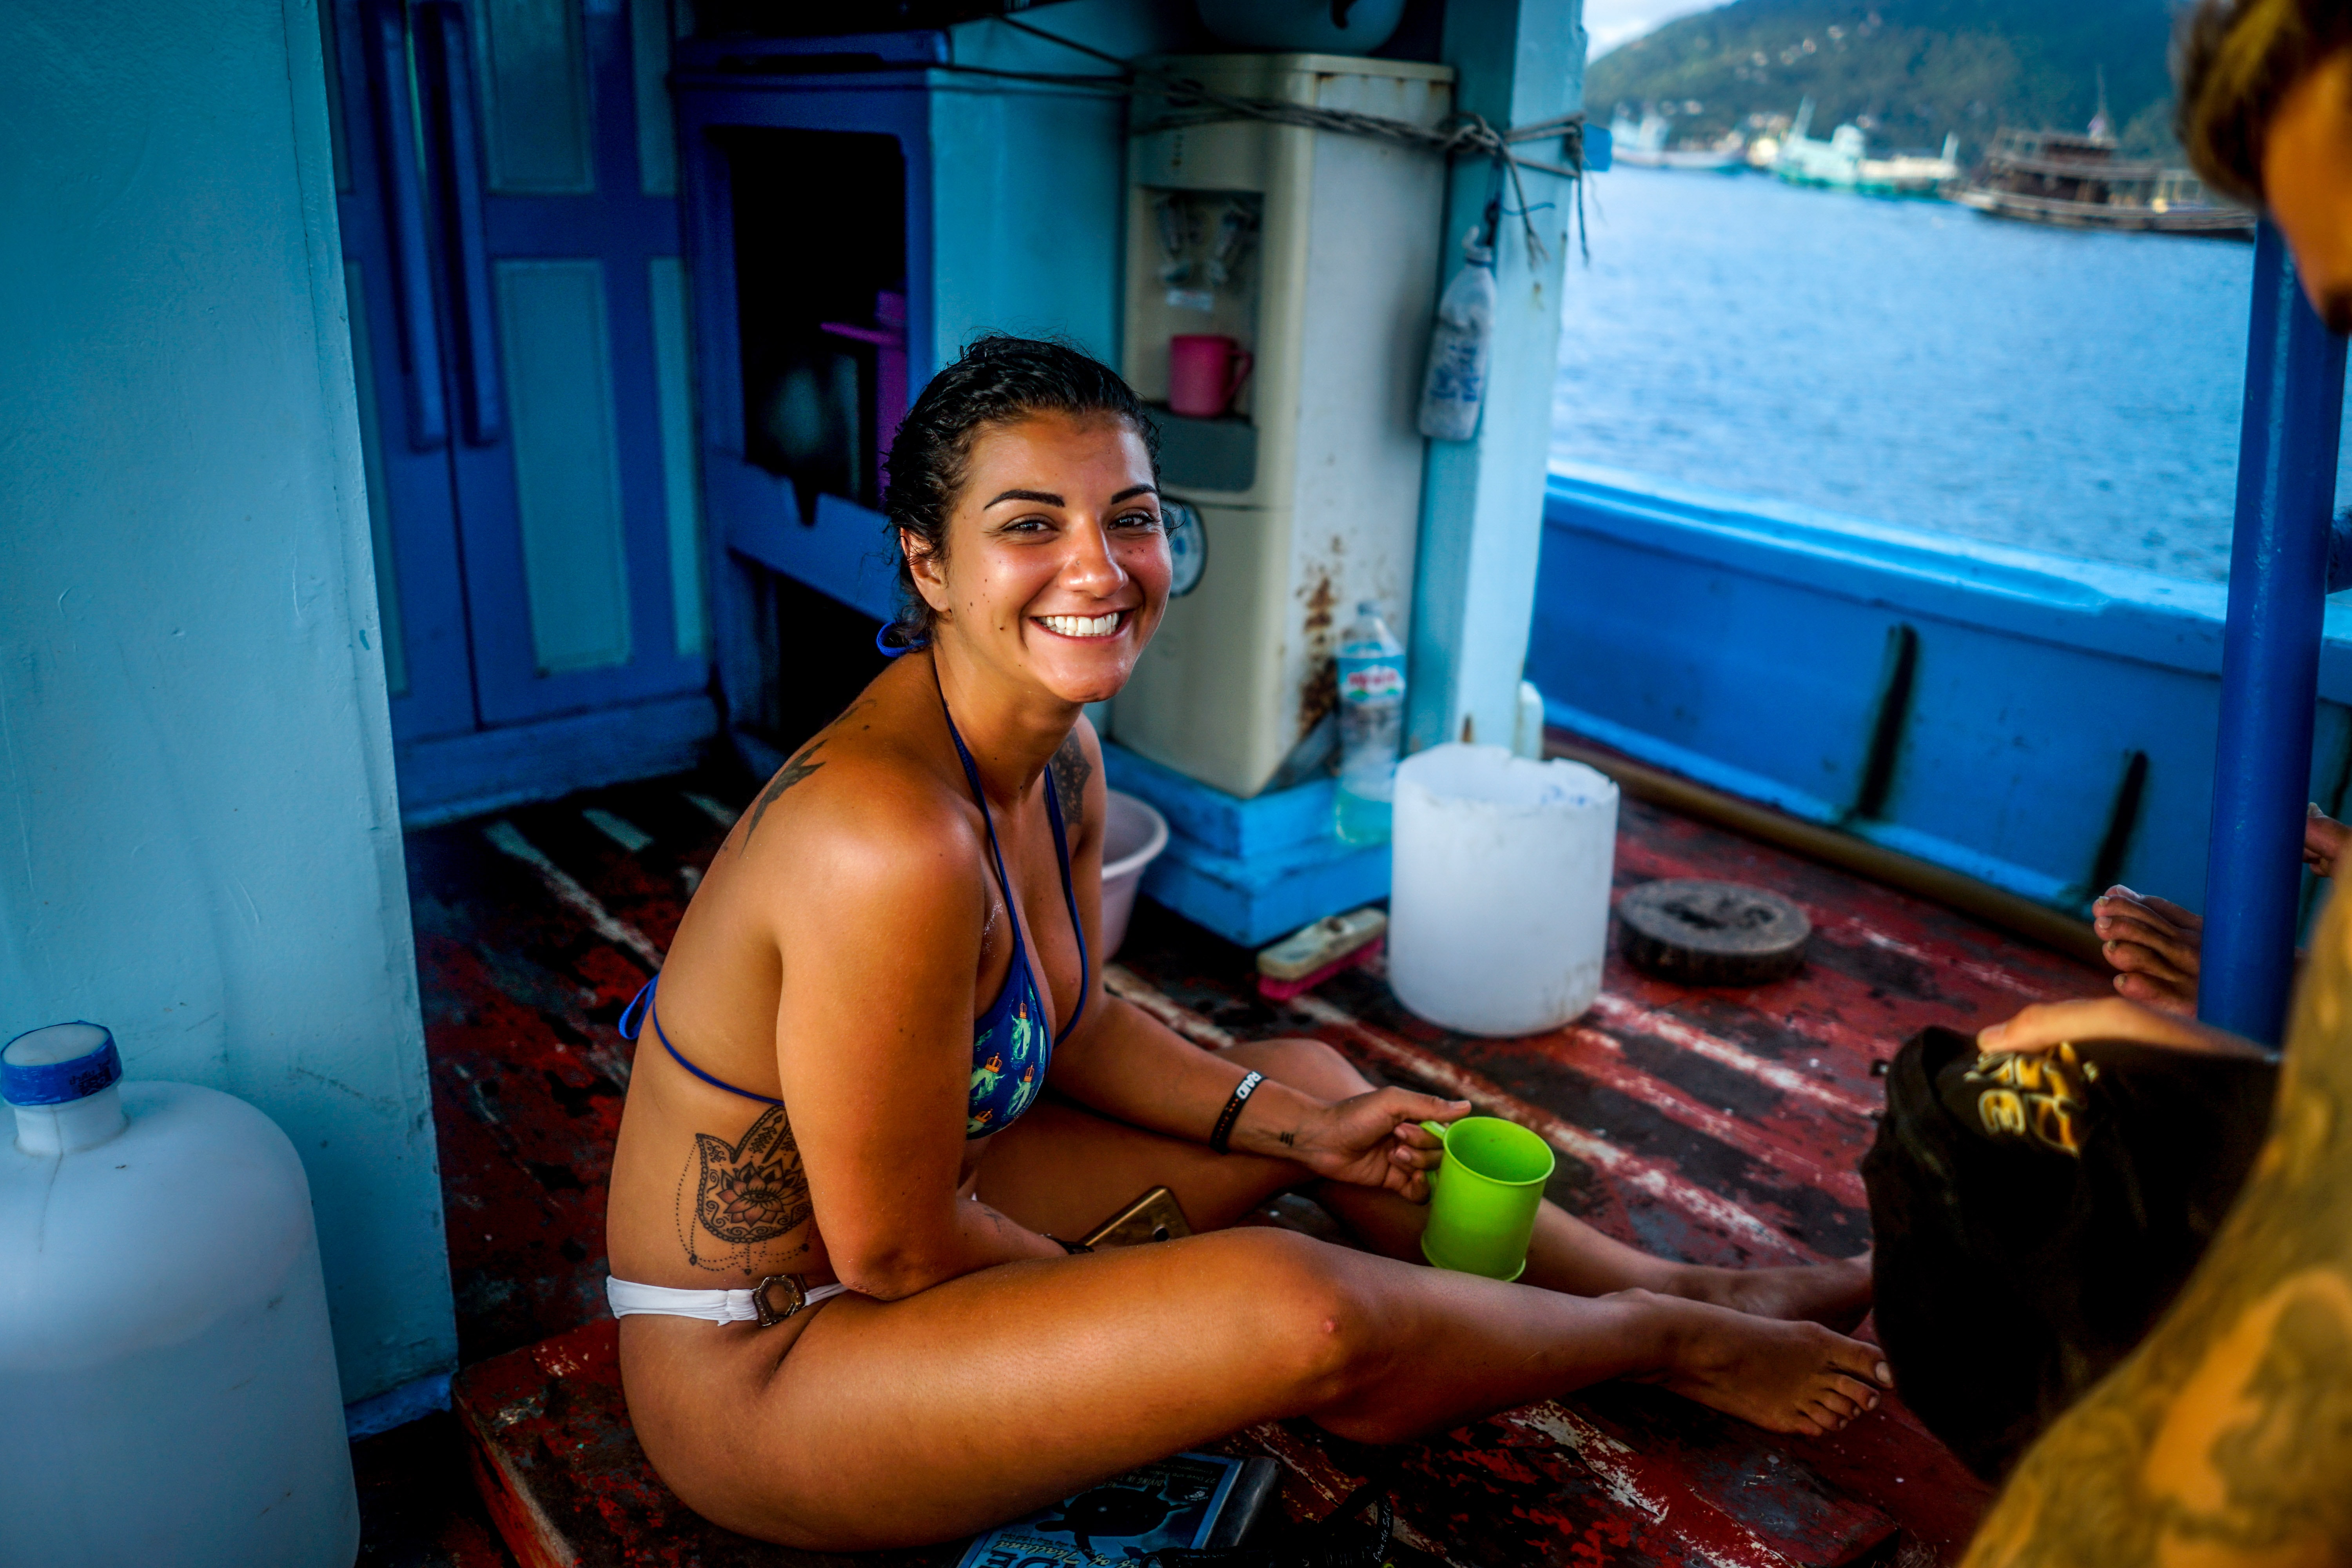 woman in blue bikini top holding green mug while sitting inside boat